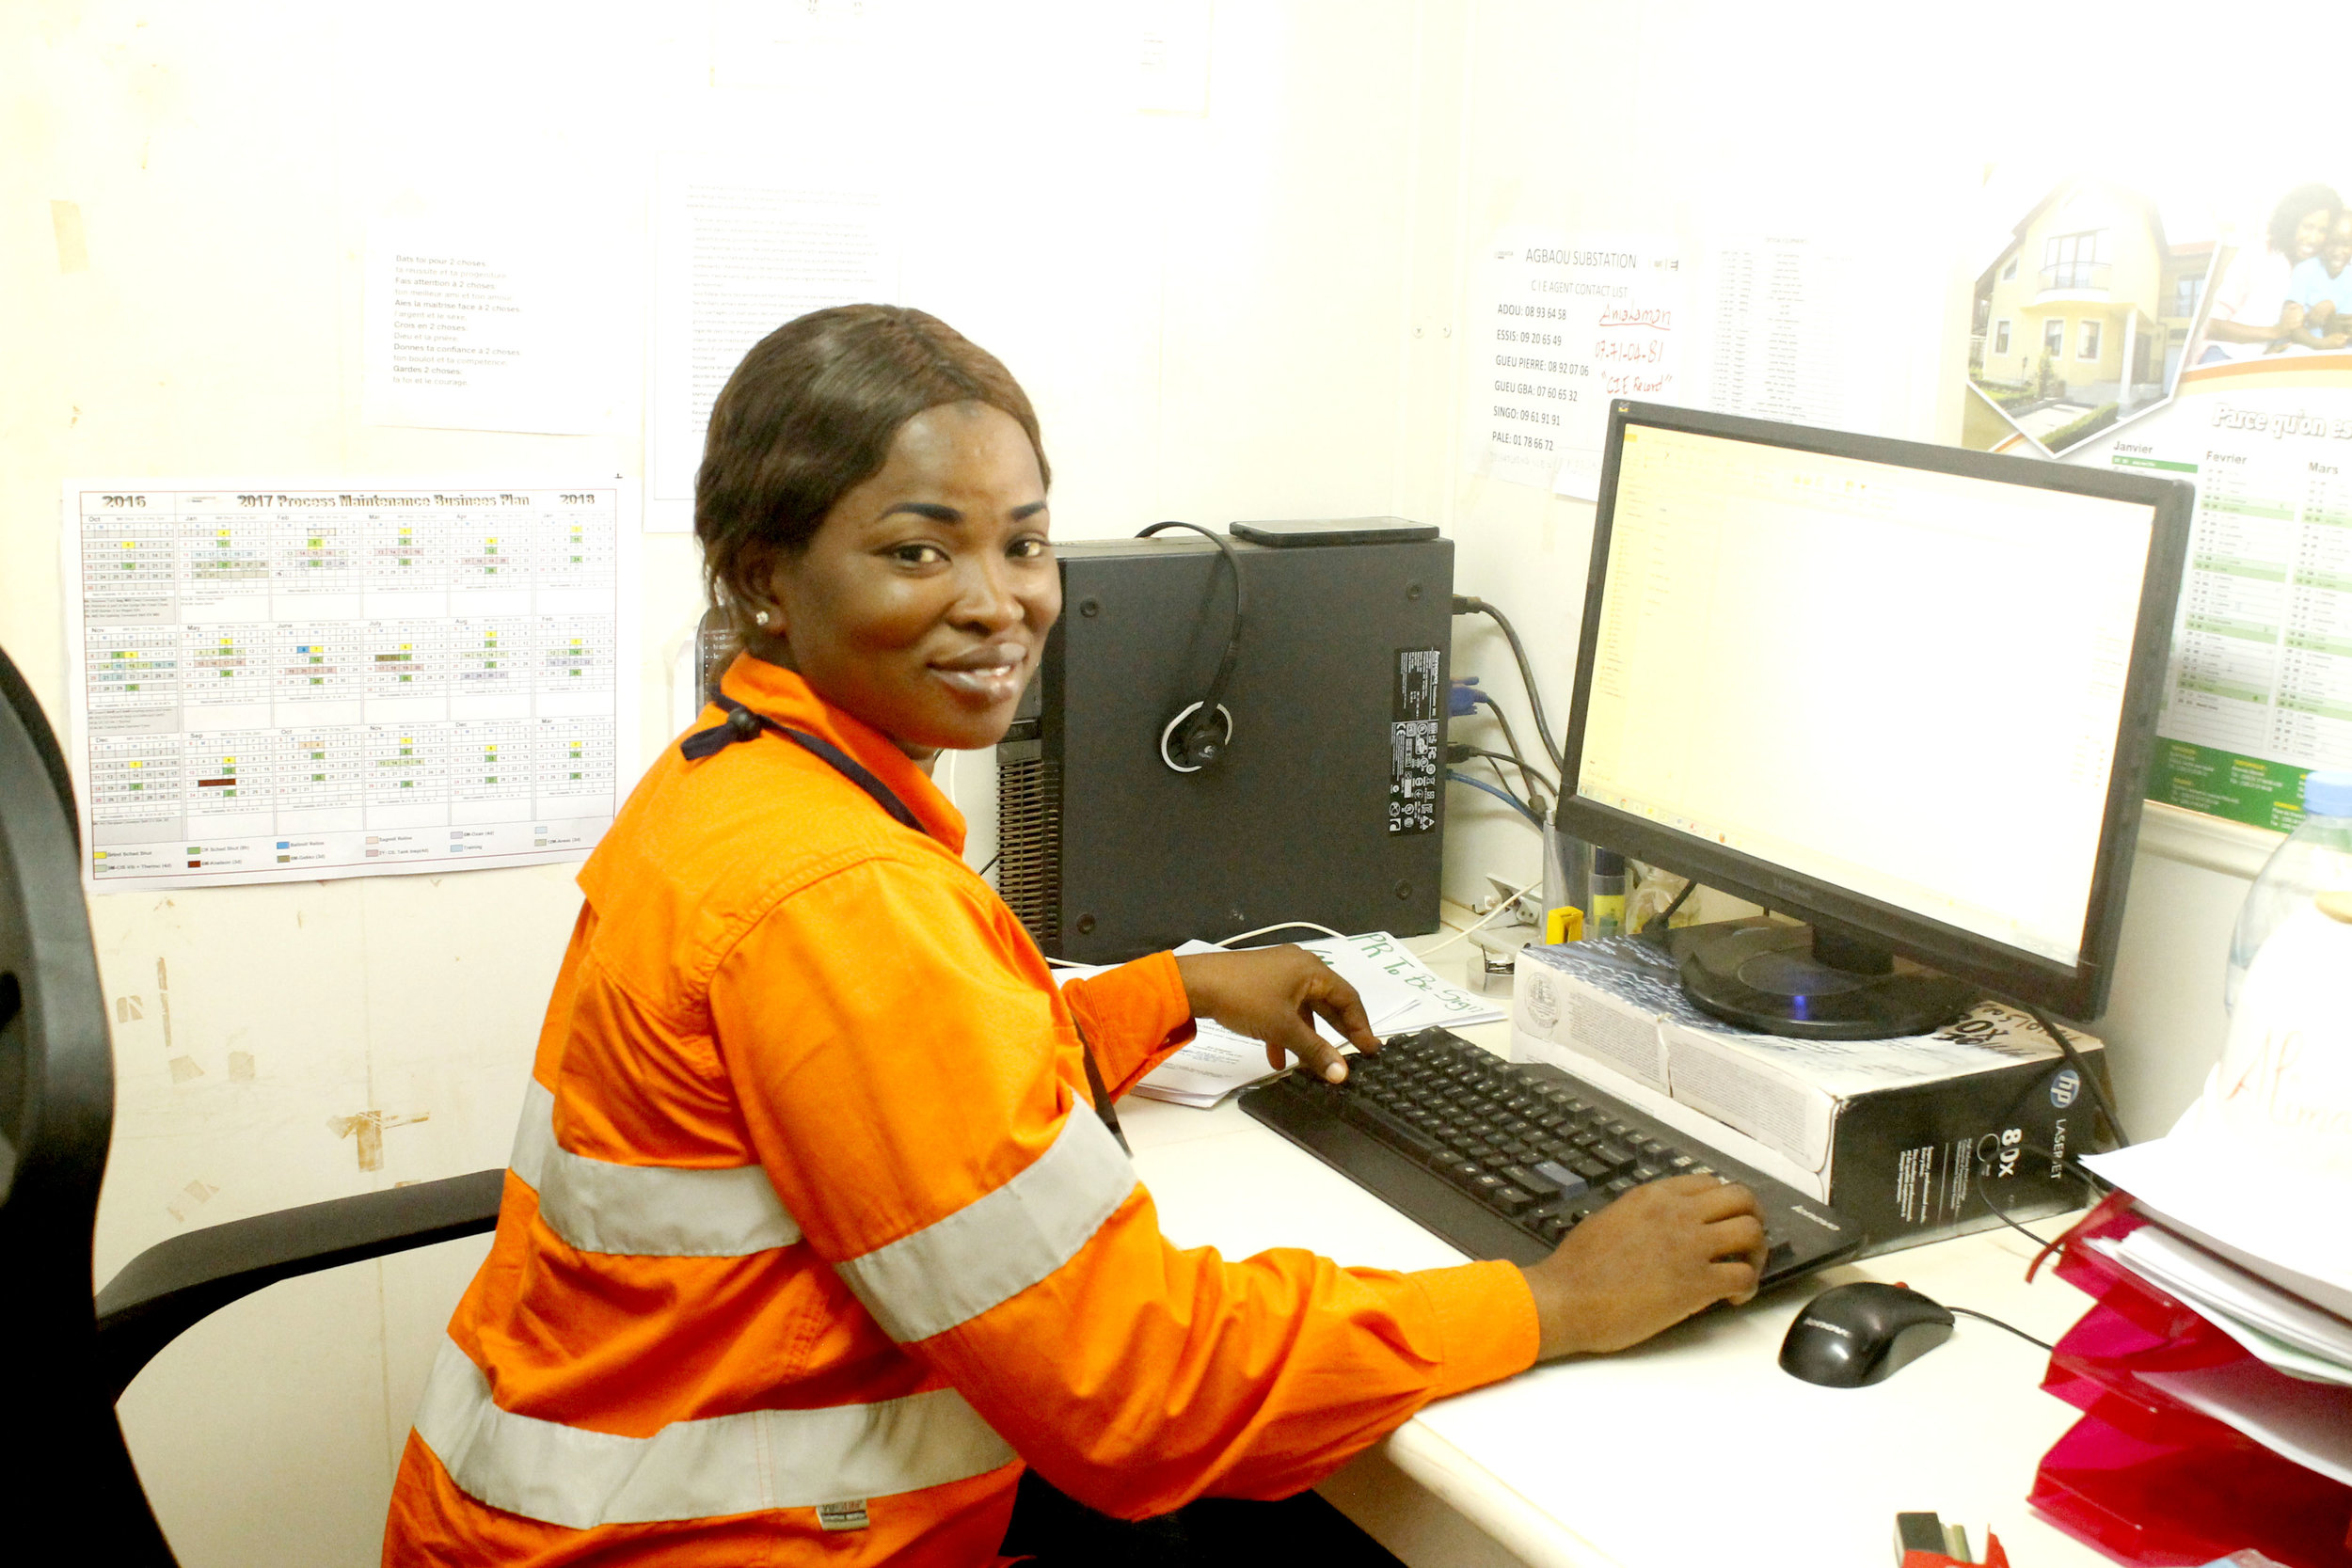 Ivorian_Women_in_Mining_IndustryːThe_smiling_face_of_the_scheduler.jpg